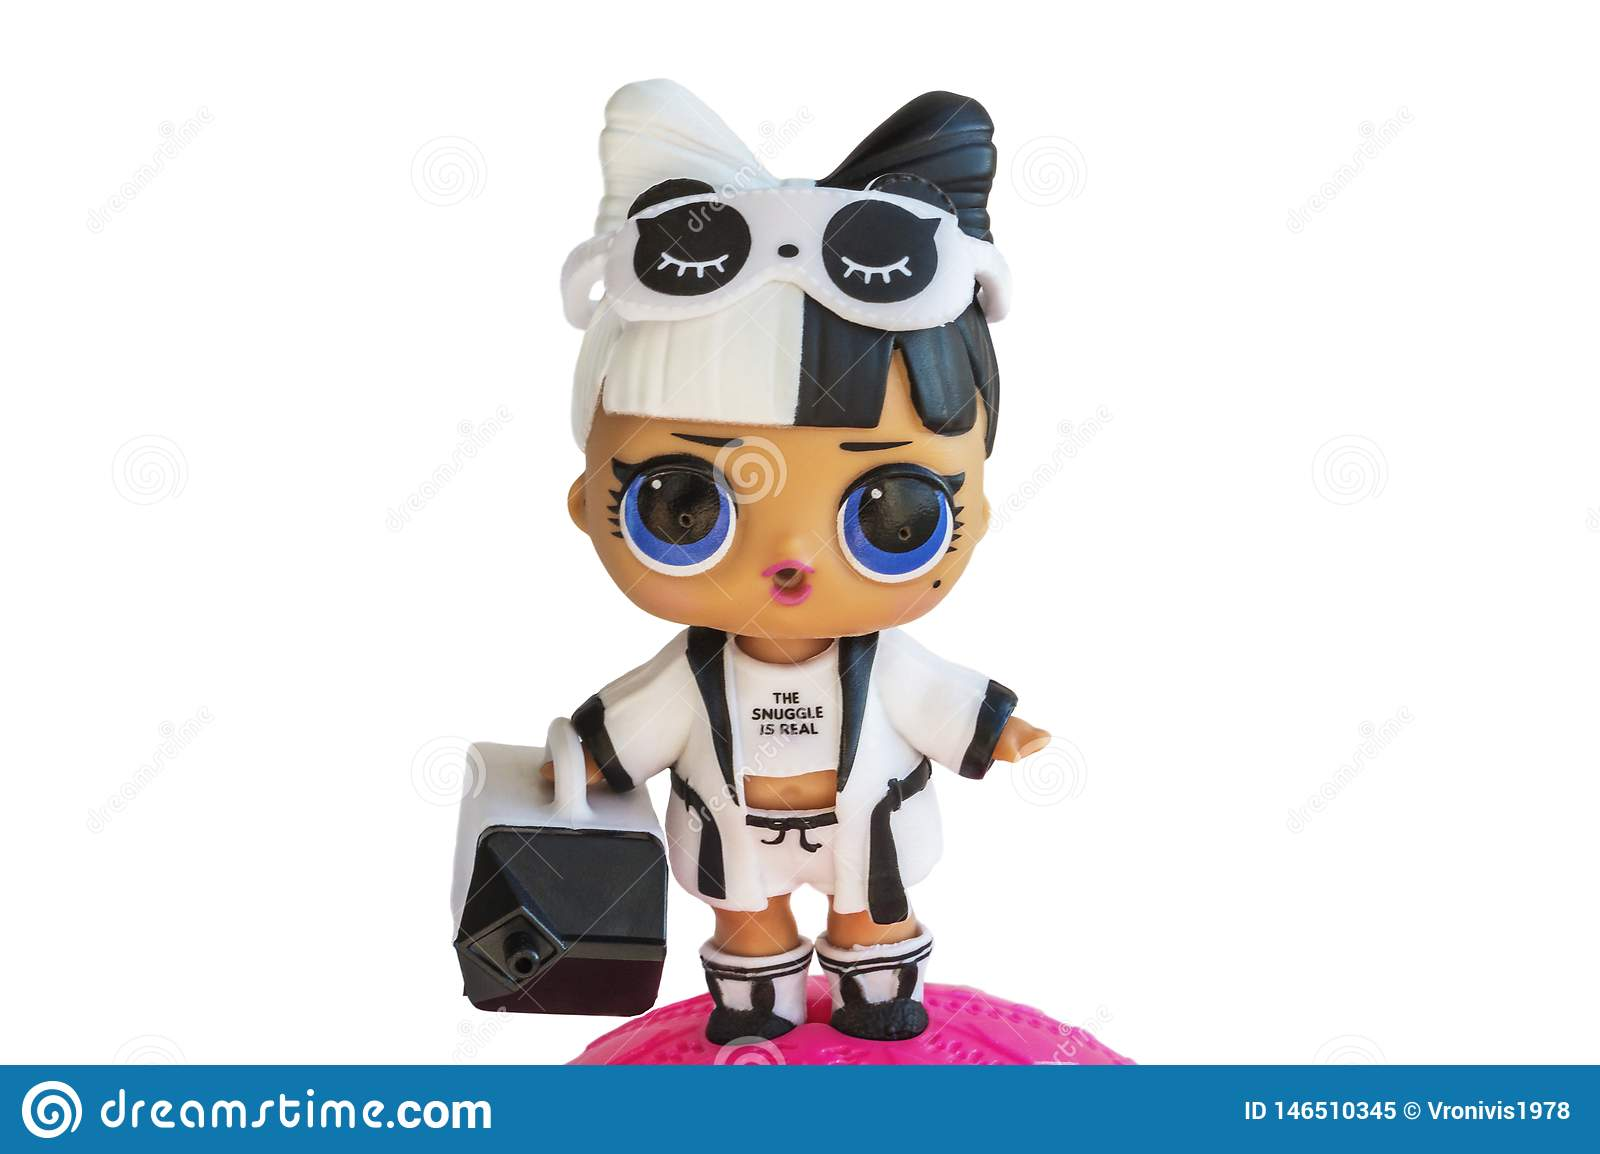 Russia, Severodvinsk, 04.20.2019. Cute little L.O.L. Surprise doll with accessories. Her name is Snuggle babe. Isolate